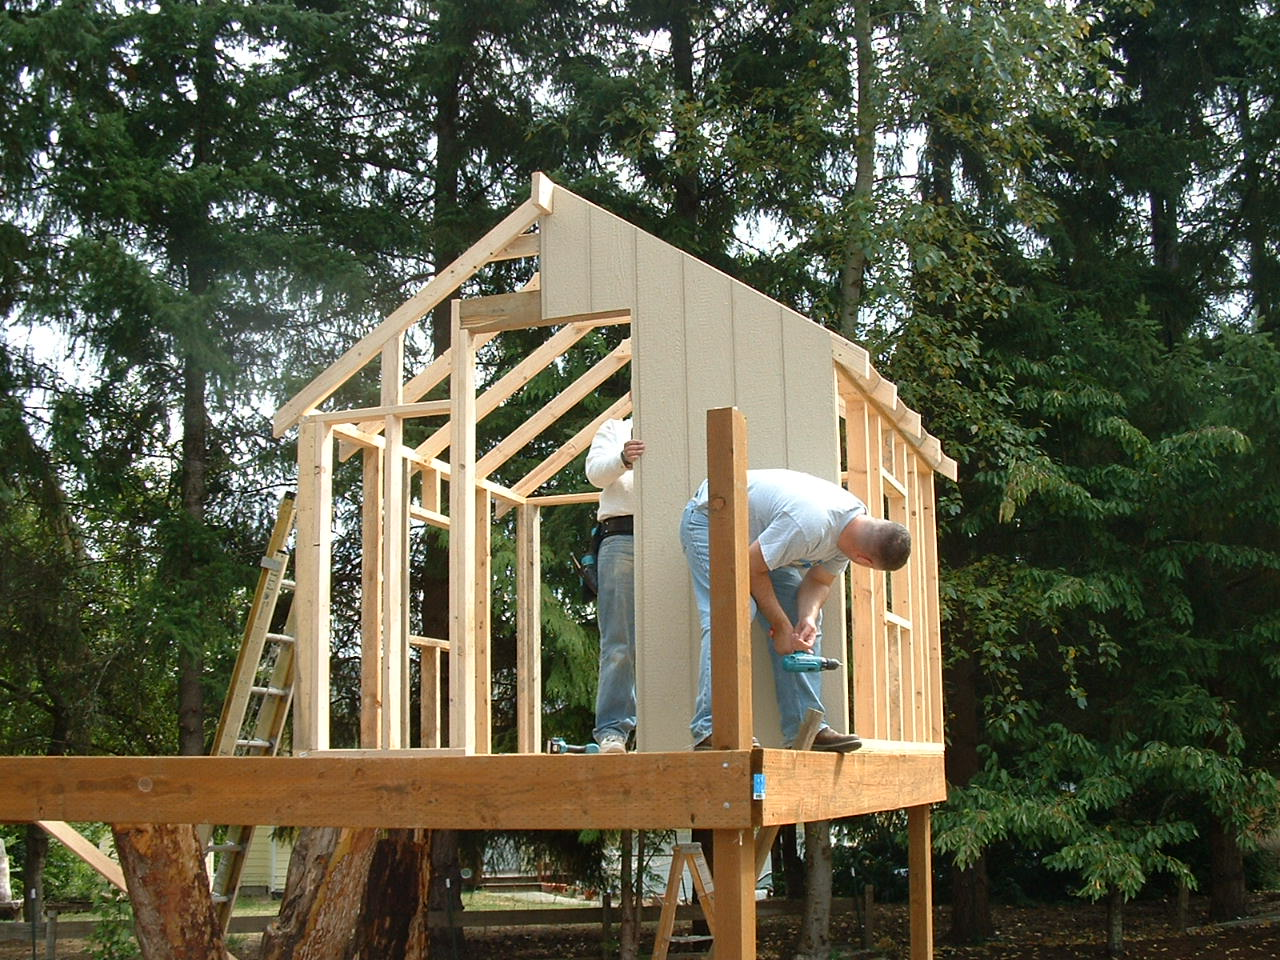 Backyard Treehouse Builders : of Tree Houses and Play Houses From Around The World, Plans And Build